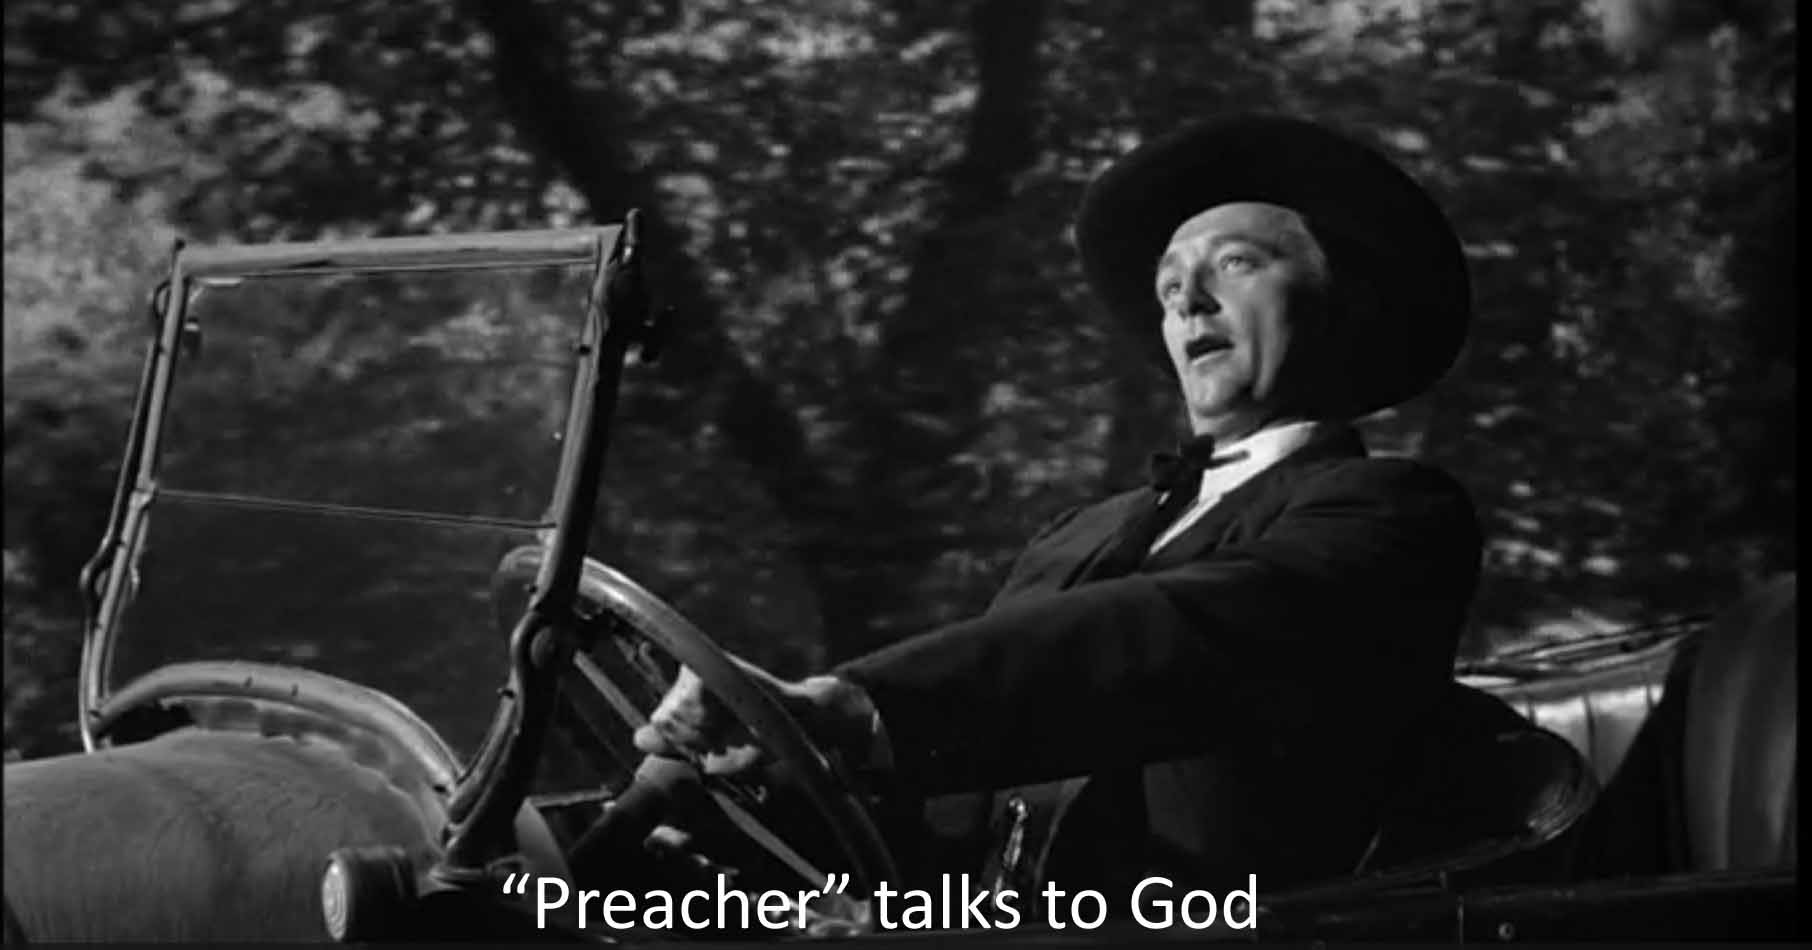 Preacher talks to God